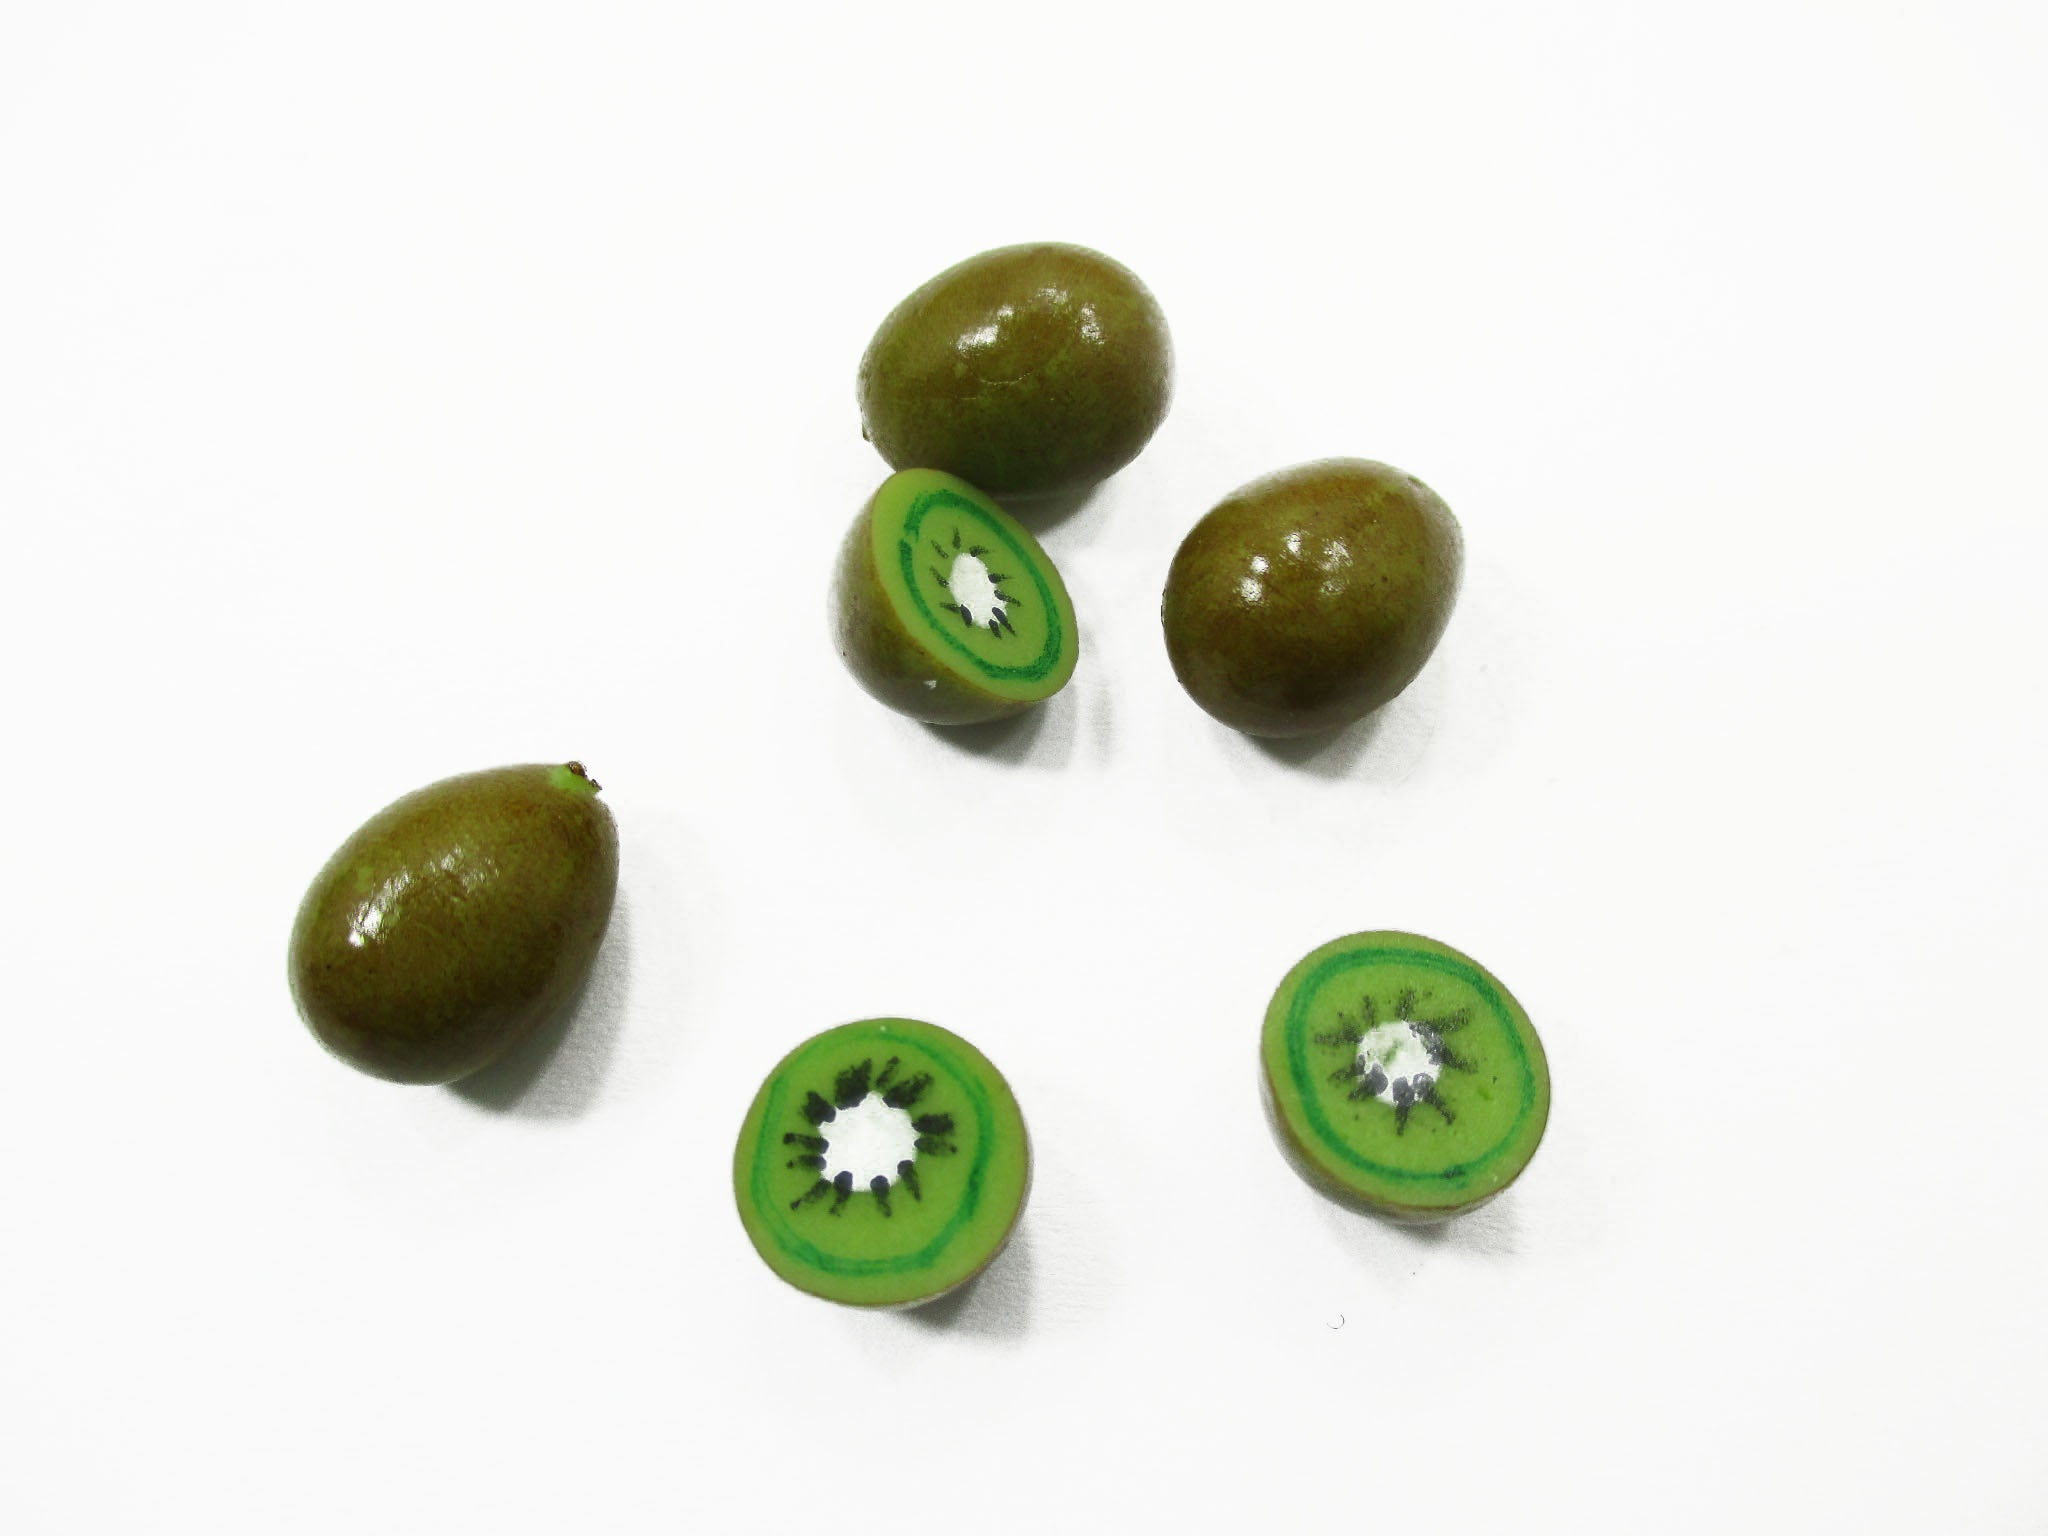 Dollhouse Food Accessories 10 Kiwi Fruit Dollhouse Miniature Loose Food 14954